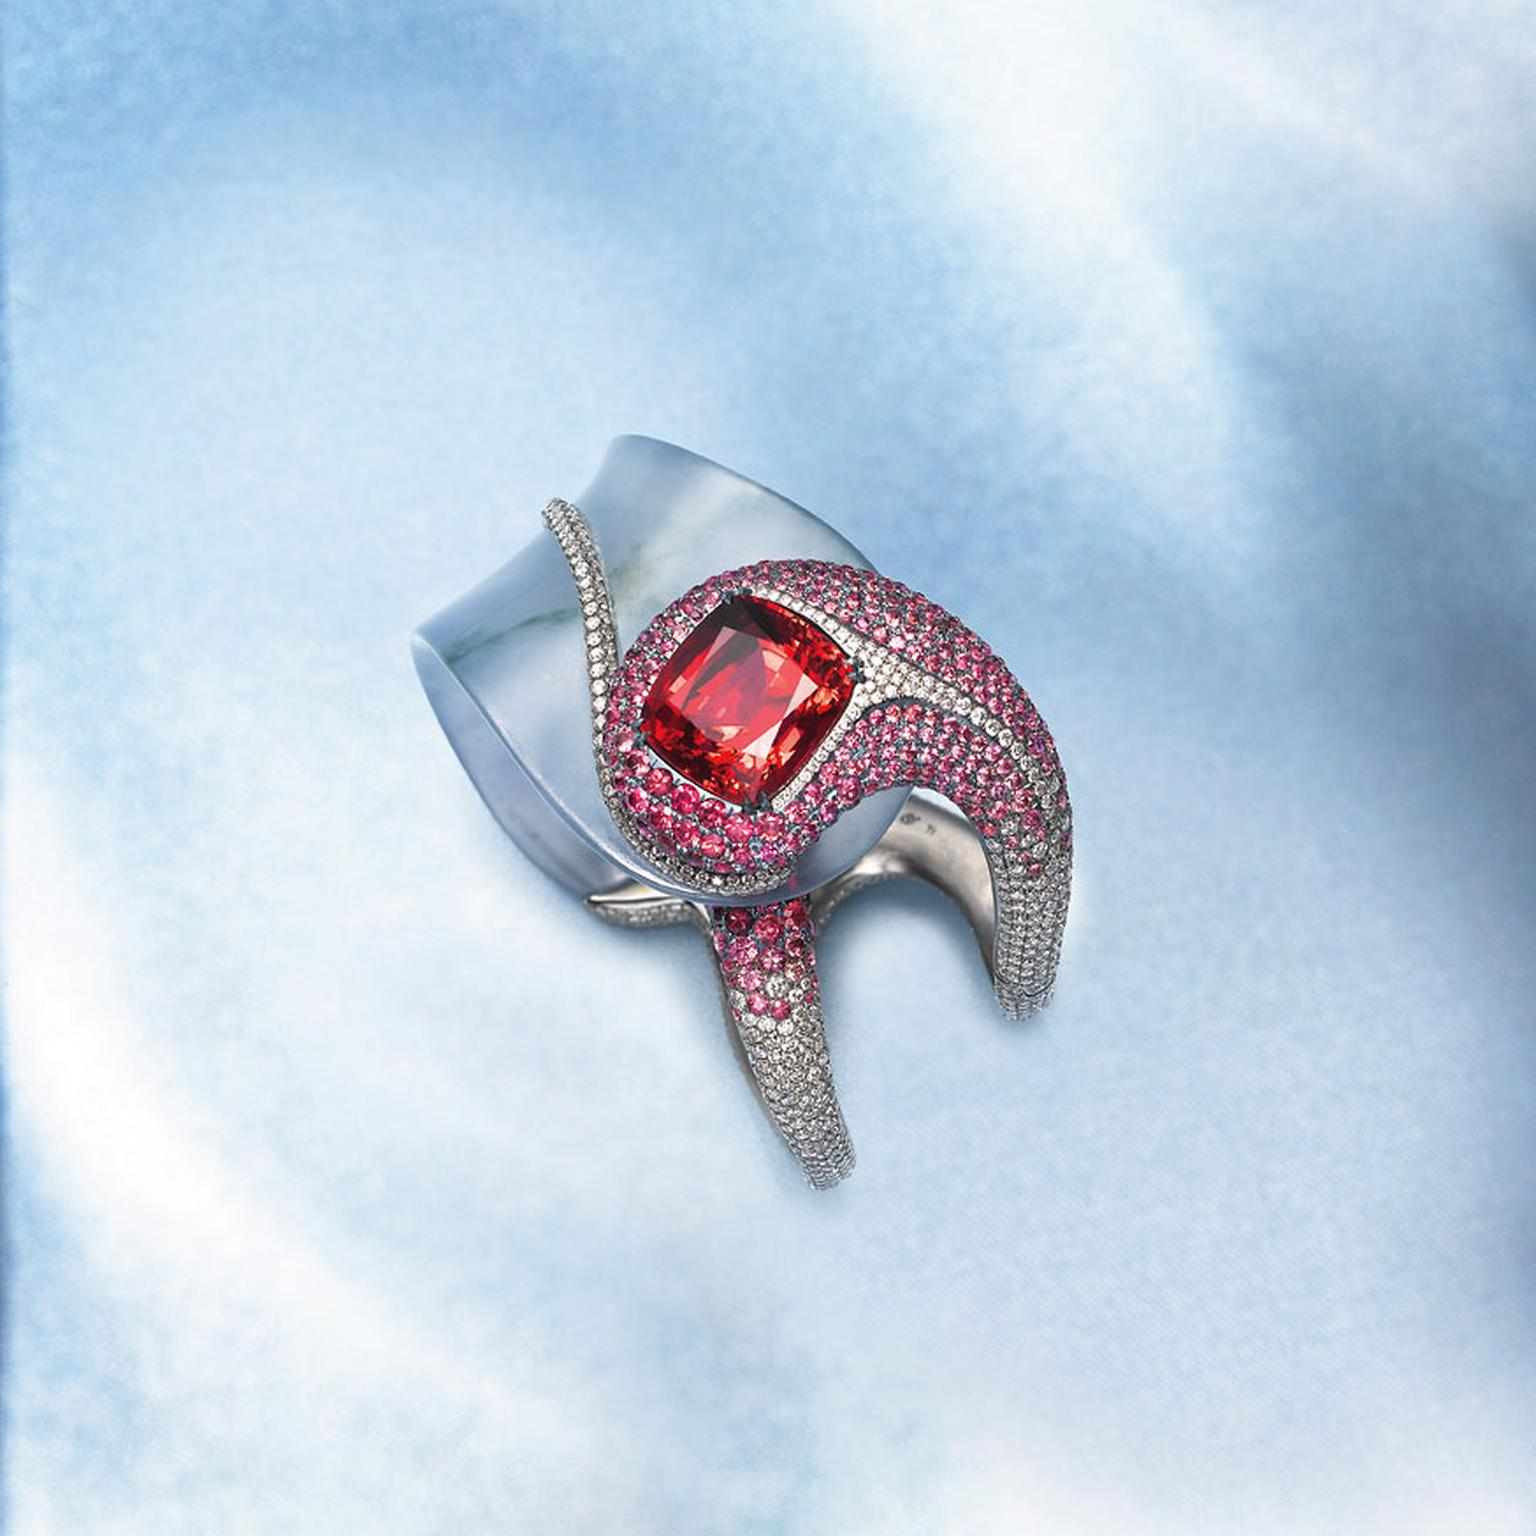 Edmond Chin red spinel, glass jadeite, red and pink spinel and platinum cuff